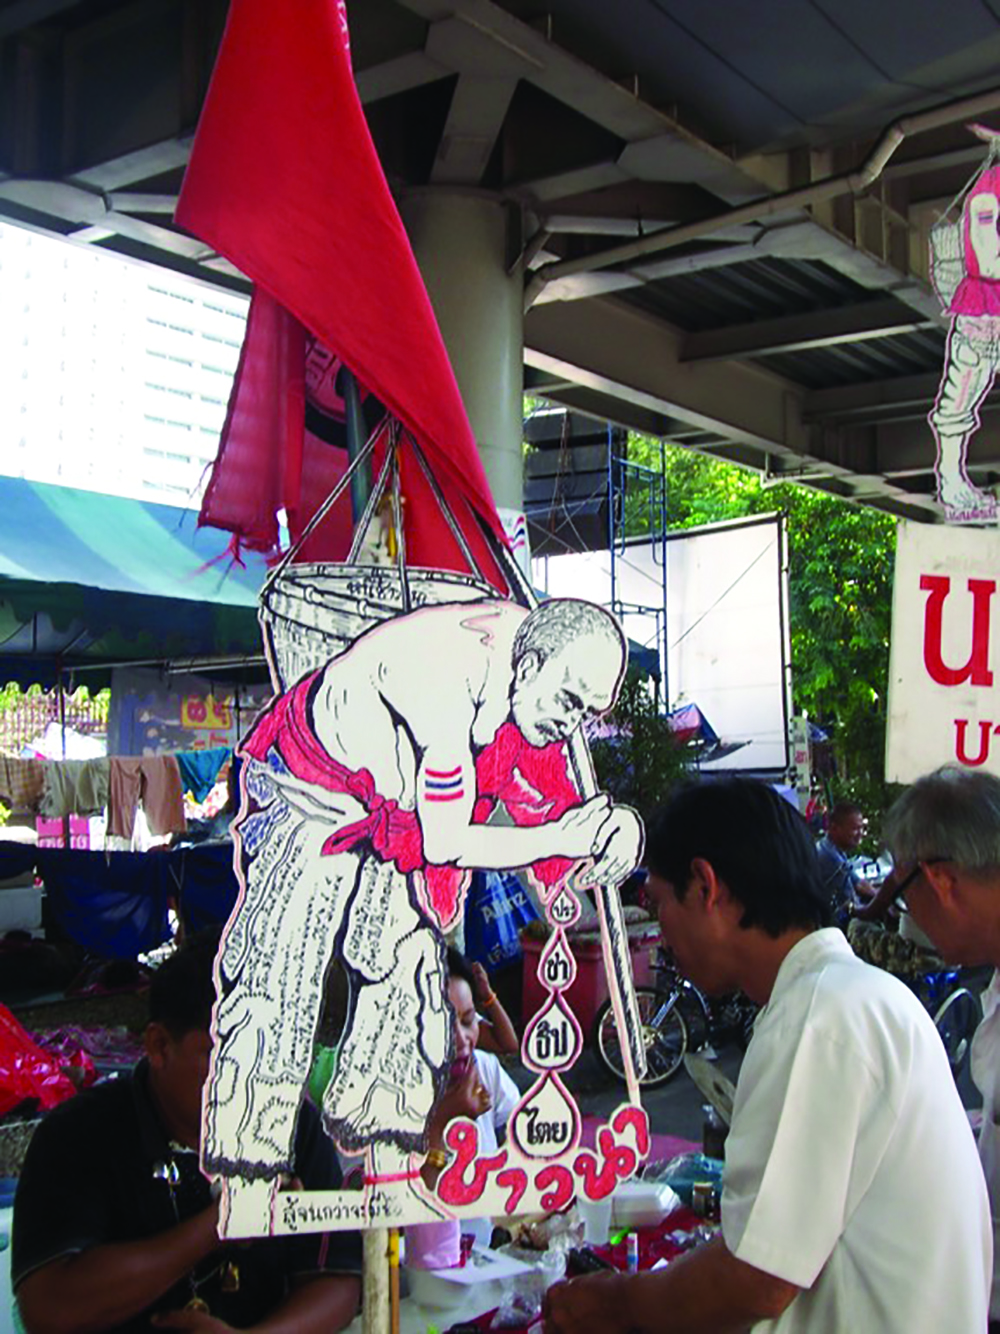 A banner depicting a farmer's burden and quest for democracy. The picture was taken during the 2010 Red Shirt protest. Photo by Bo Kyeong Seo.